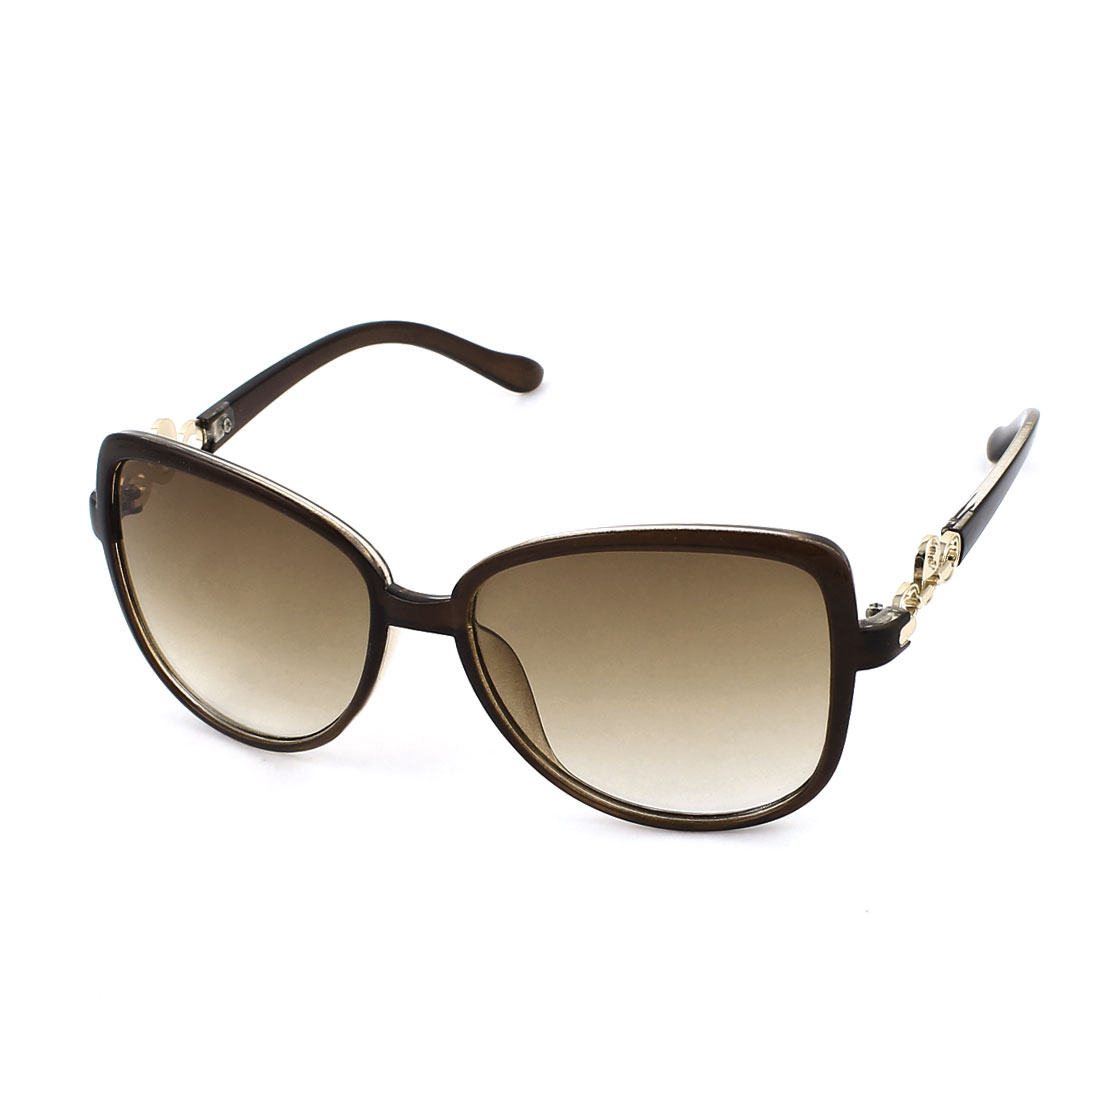 Brown Lens One Bridge Lock Detail Full Frame Sunglasses for Woman